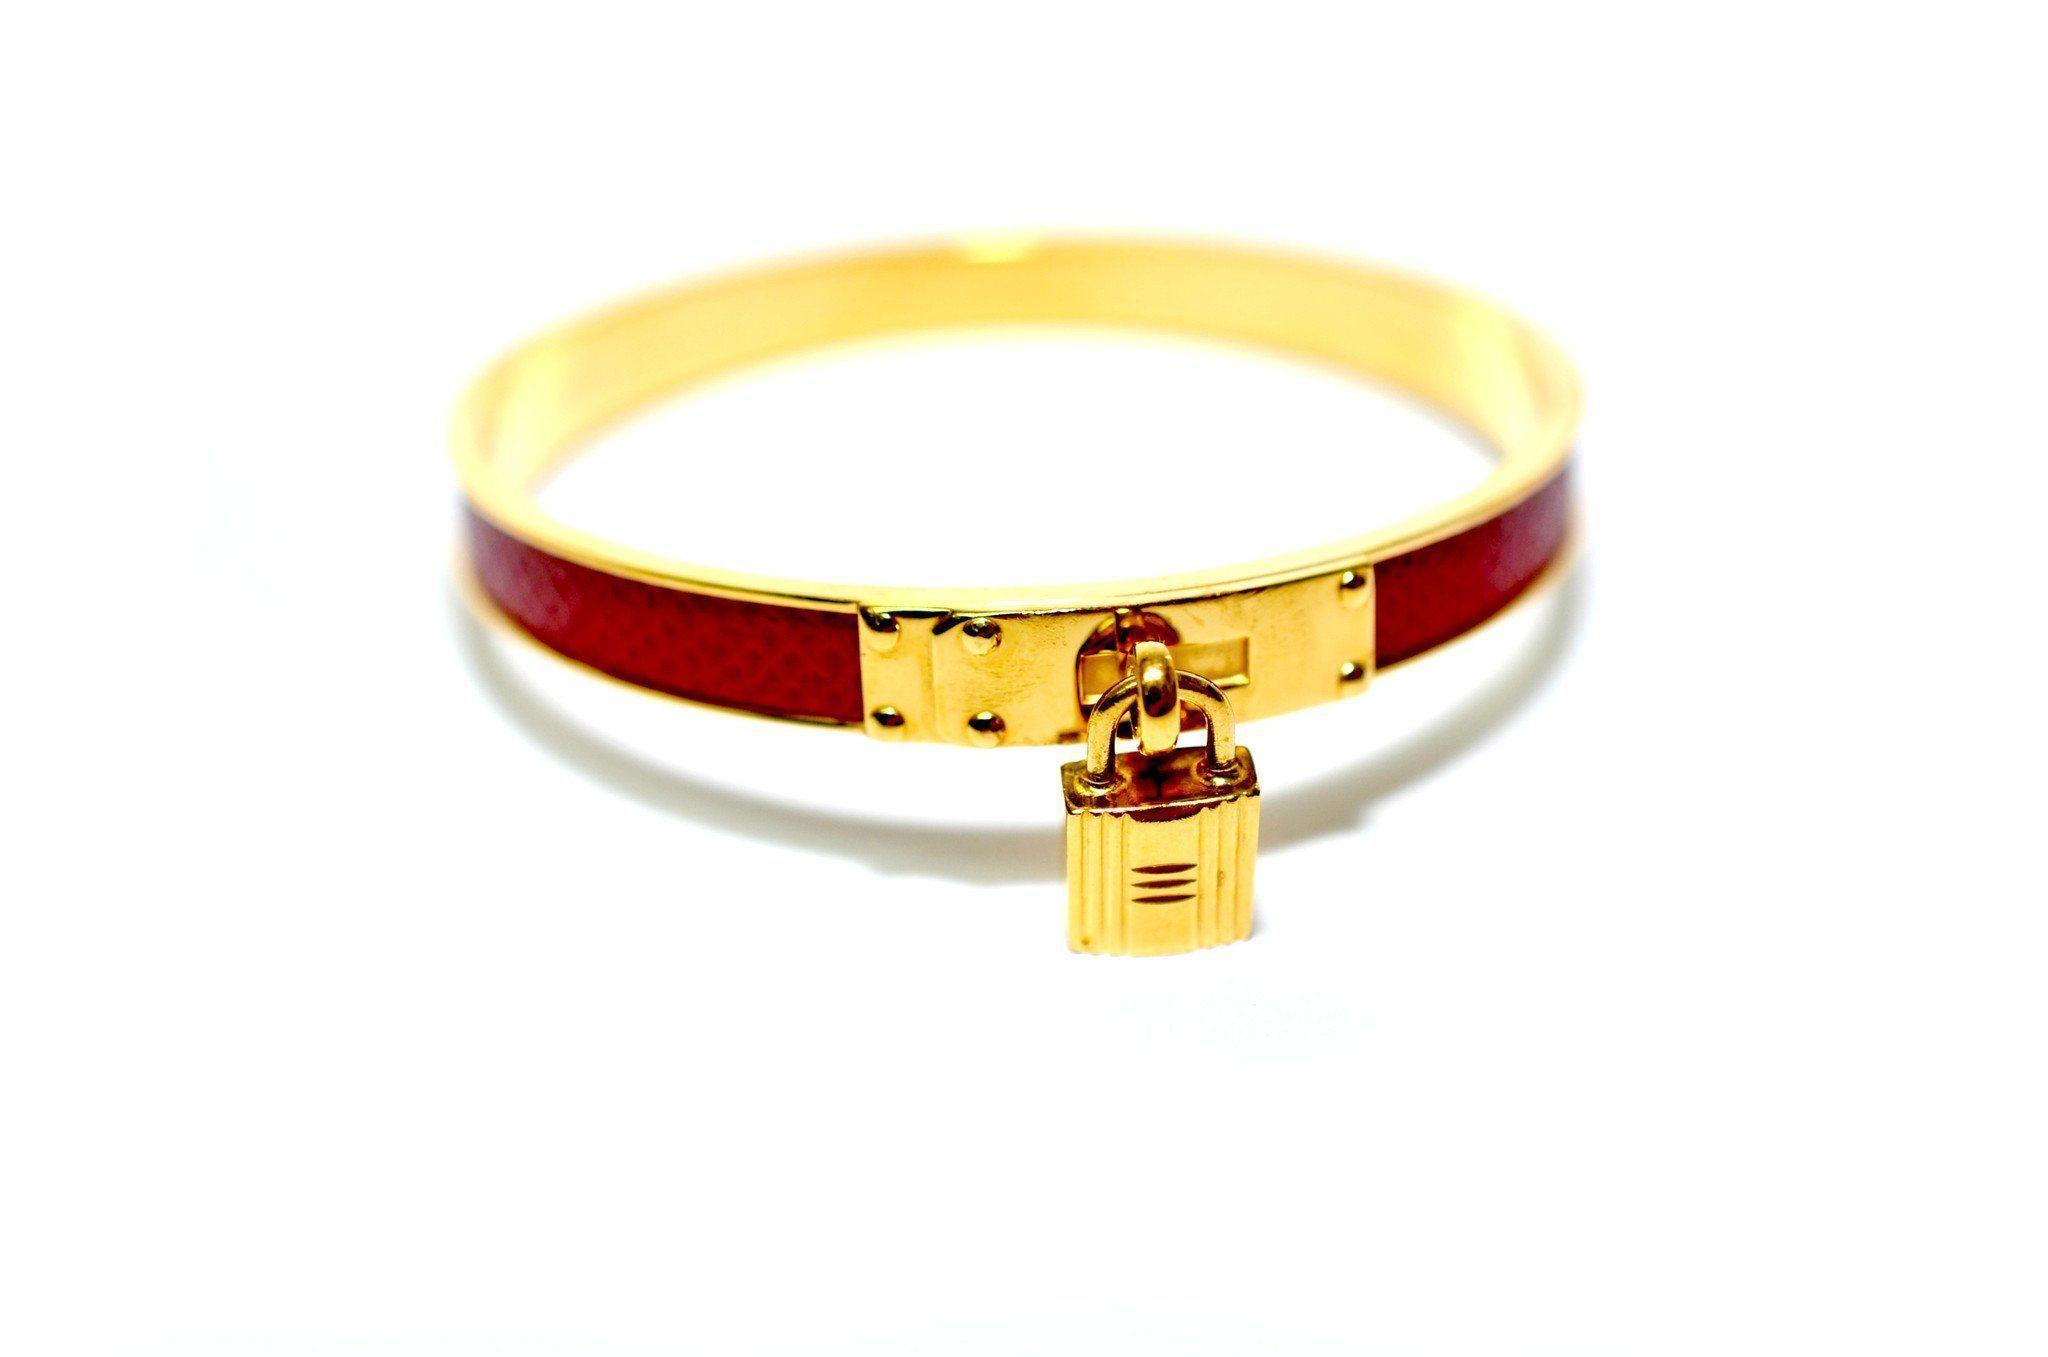 Authentic Vintage Hermes 7cm Red Leather and Gold Lock Bangle